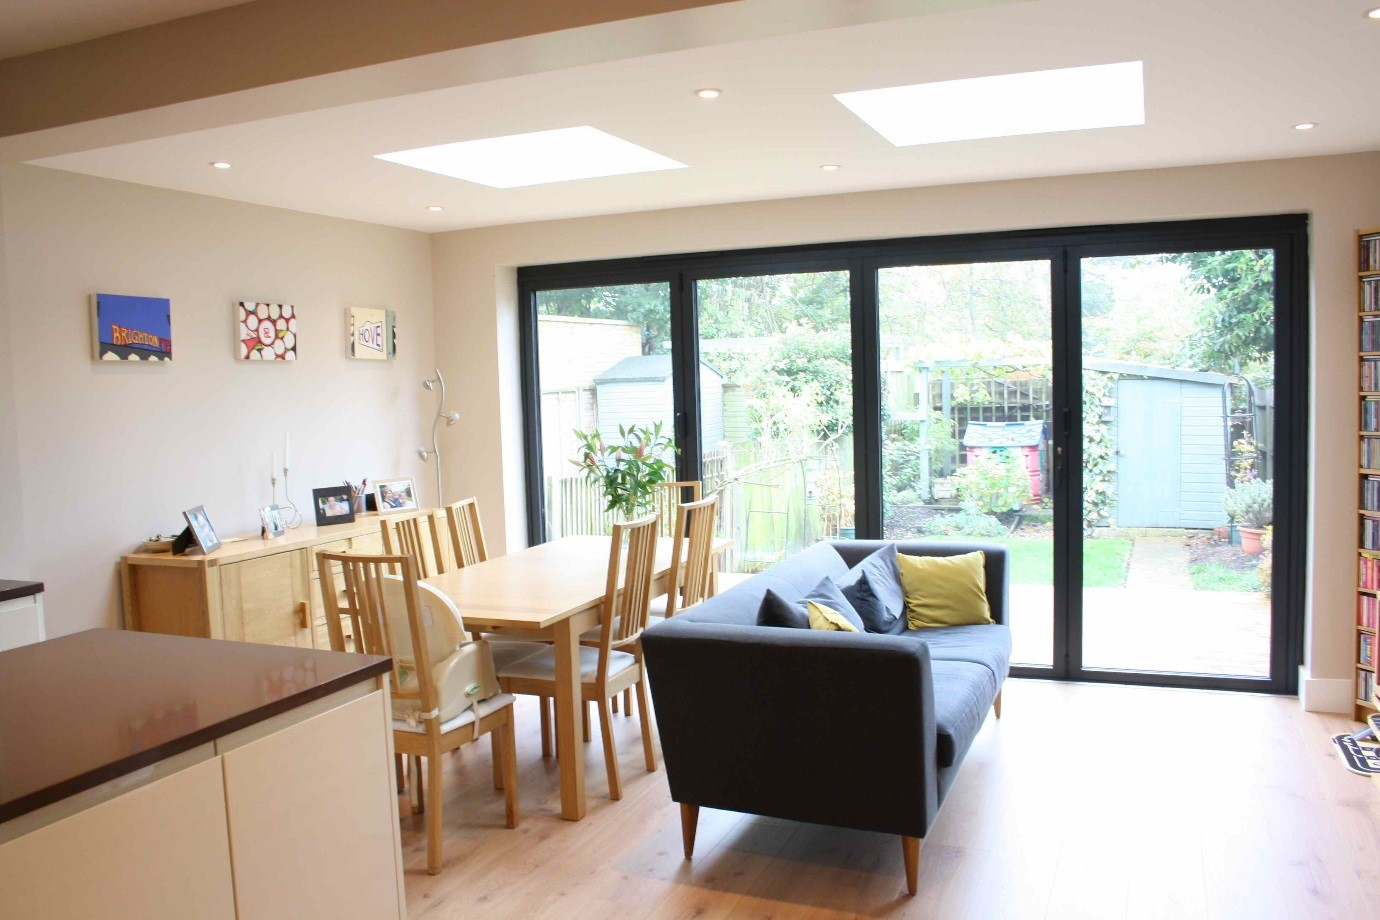 The Owners Of This South West London Home Have Added A Flat Roof Extension  To Their Home To Create A Spacious And Light Kitchen Diner.